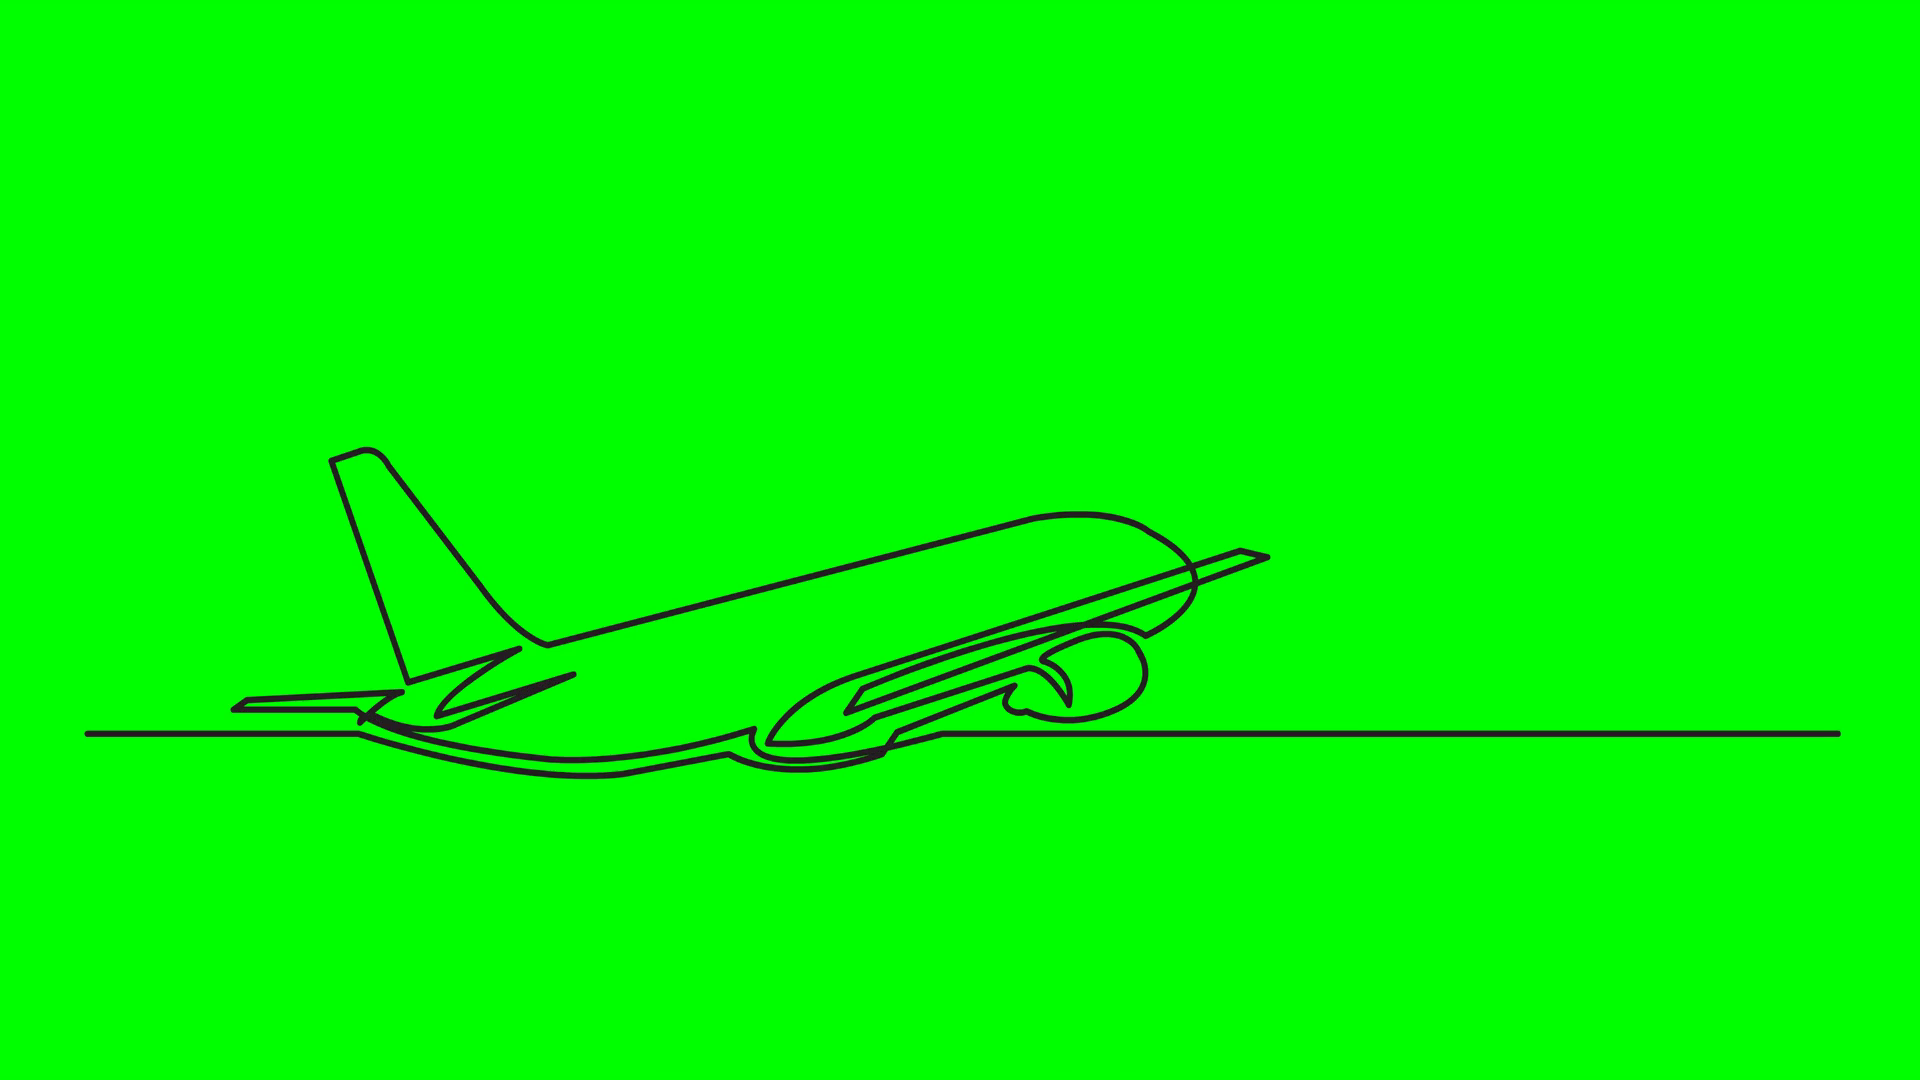 1920x1080 Continuous Line Drawing Of Passenger Jet Plane On Green Background